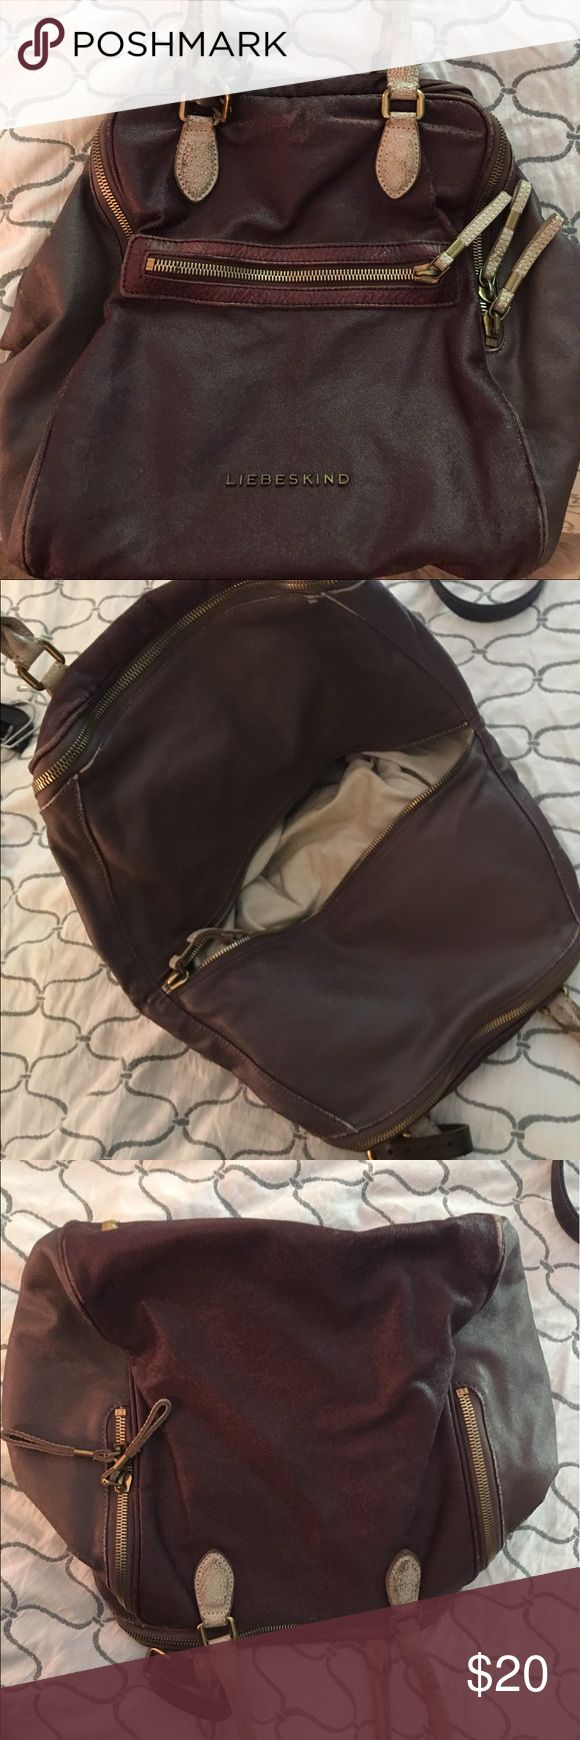 Purple Liebeskind handbag! $20 Purple Liebeskind handbag for sale for $20. Used. Small tear on bottom corner. Liebeskind Bags Shoulder Bags